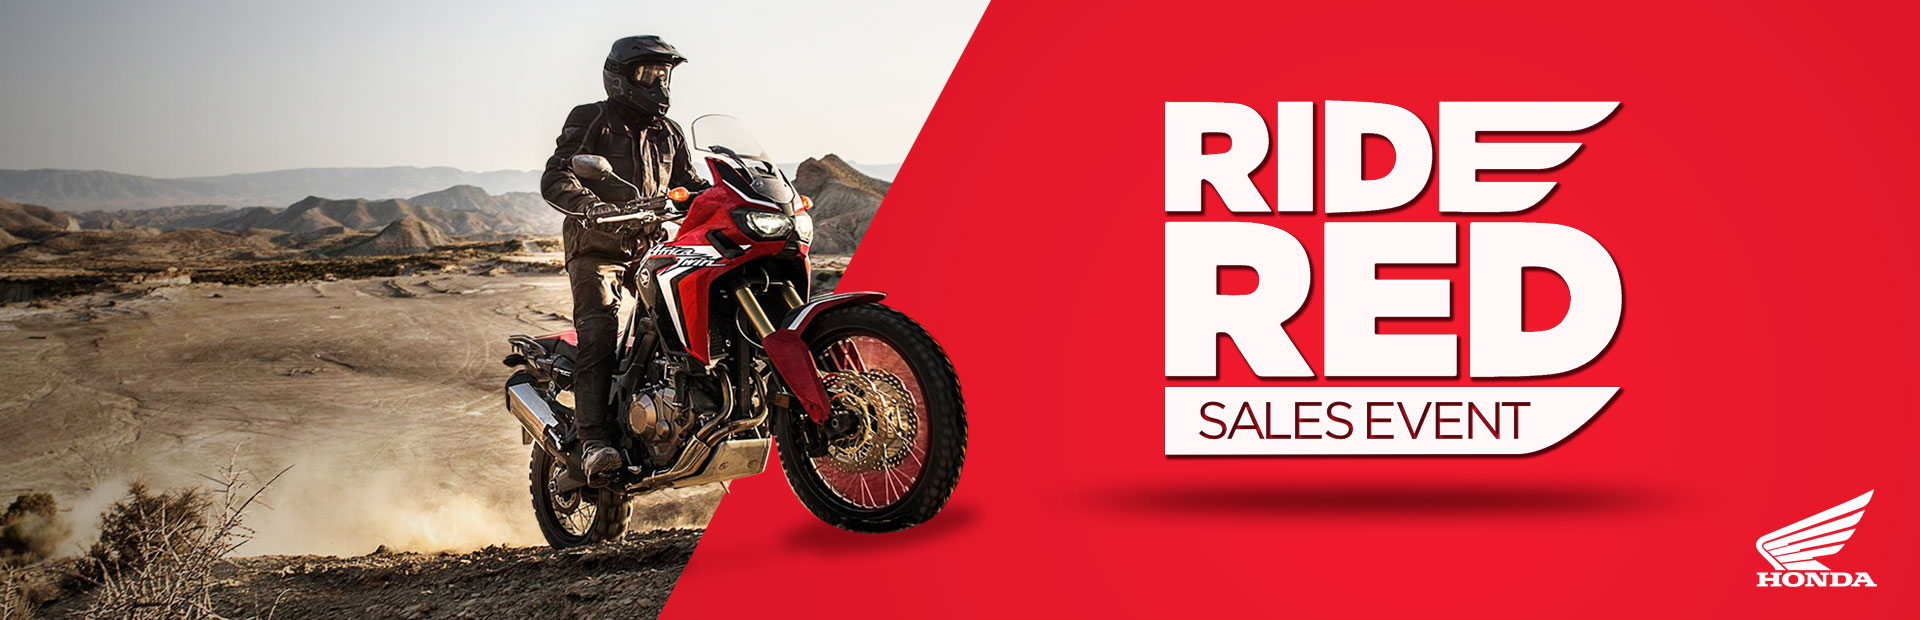 Ride Red Sales Event - Motorcycles